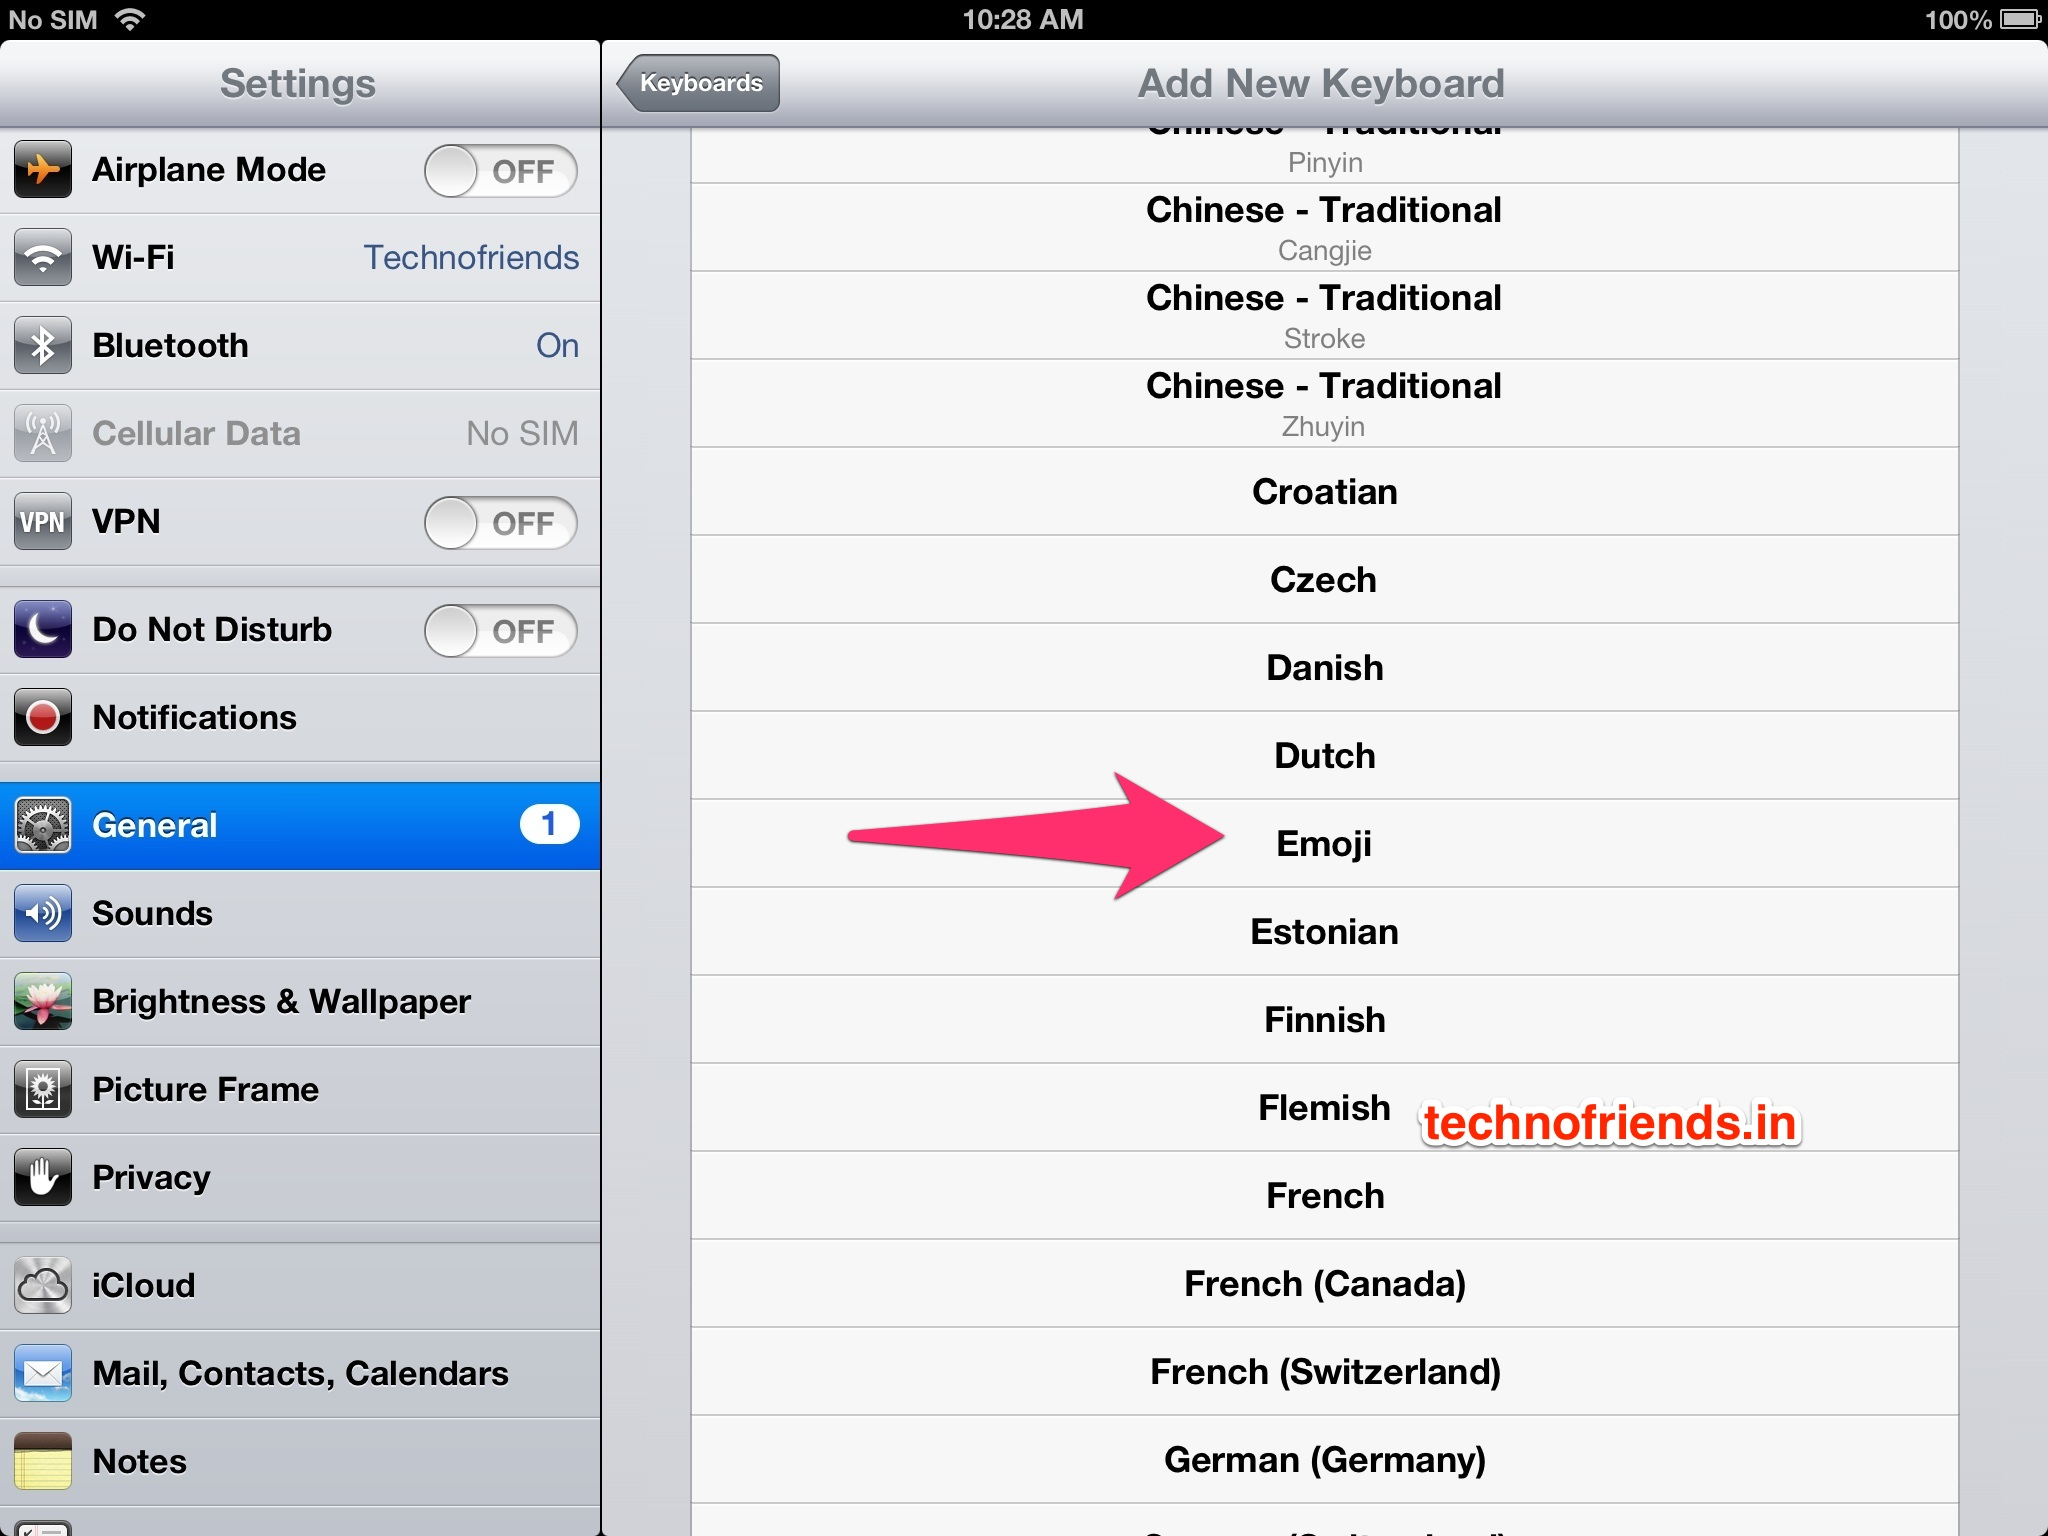 How to add an Emoji keyboard to your iOS Devices for FREE